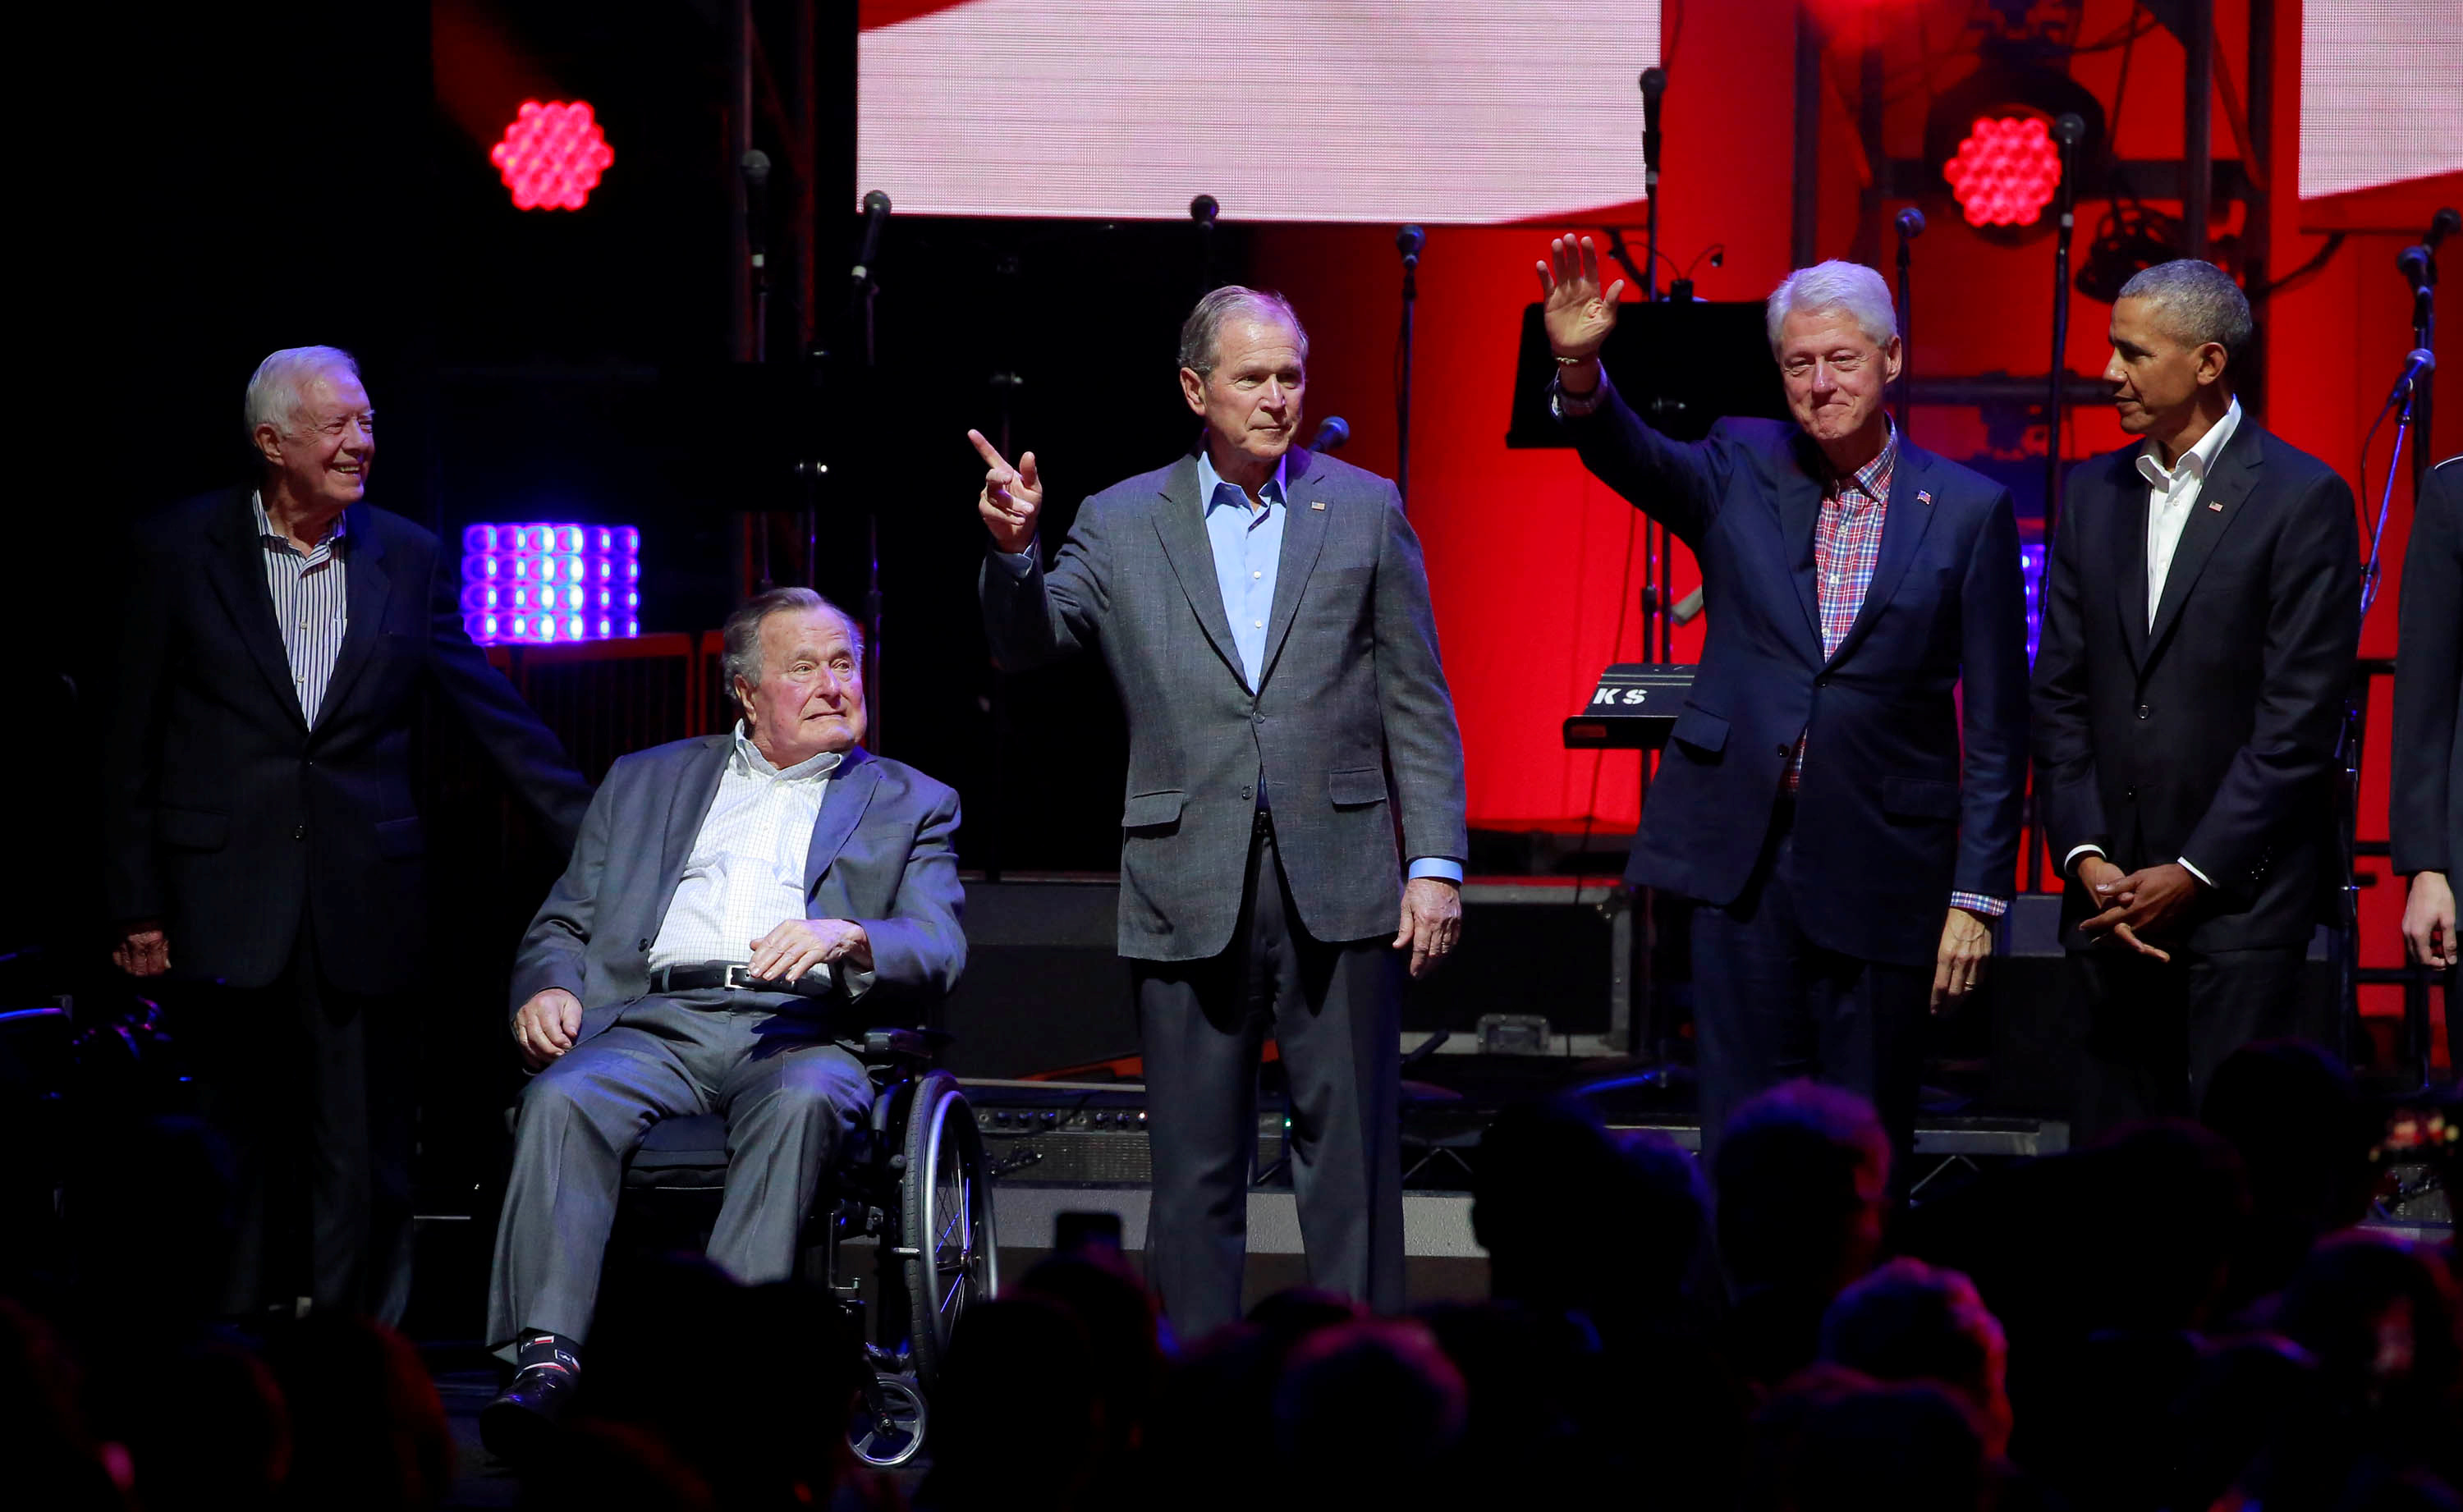 Five former U.S. presidents, Jimmy Carter, George H.W. Bush, Bill Clinton, George W. Bush, and Barack Obama attend a concert at Texas A&M University benefiting hurricane relief efforts in College Station, Texas, U.S., October 21, 2017.   REUTERS/Richard Carson